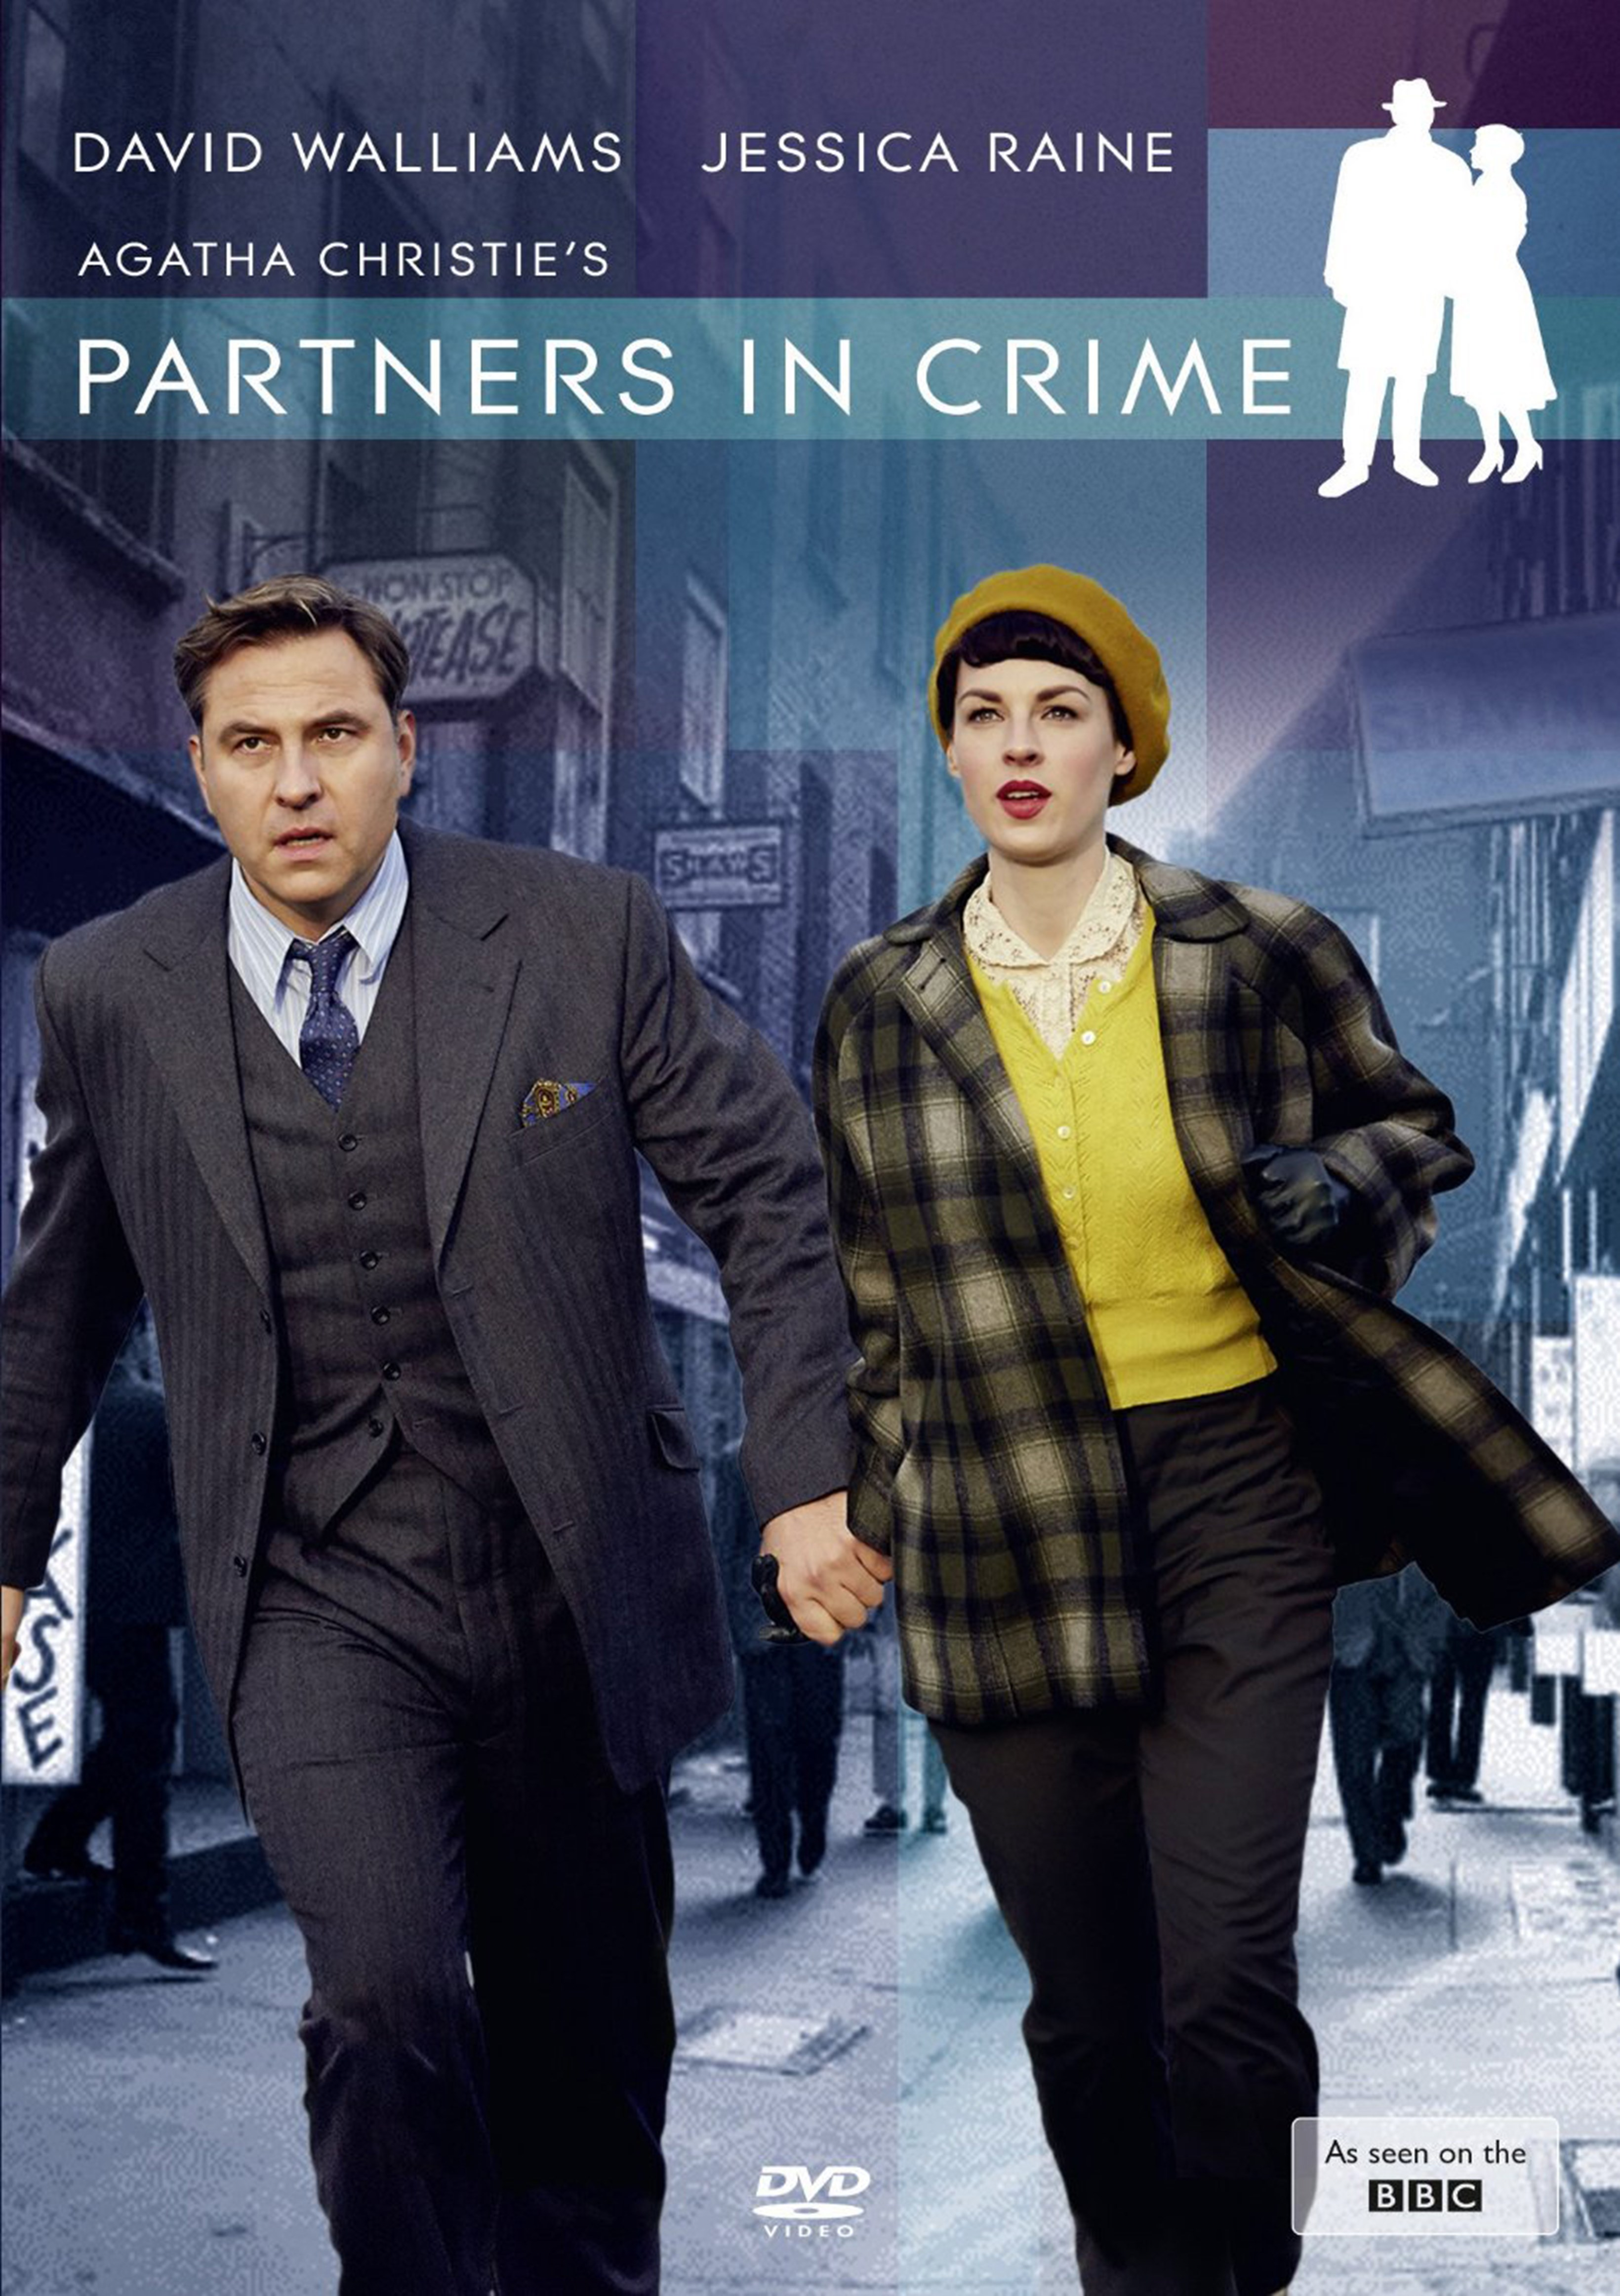 Agatha Christie's Partners in Crime - 1